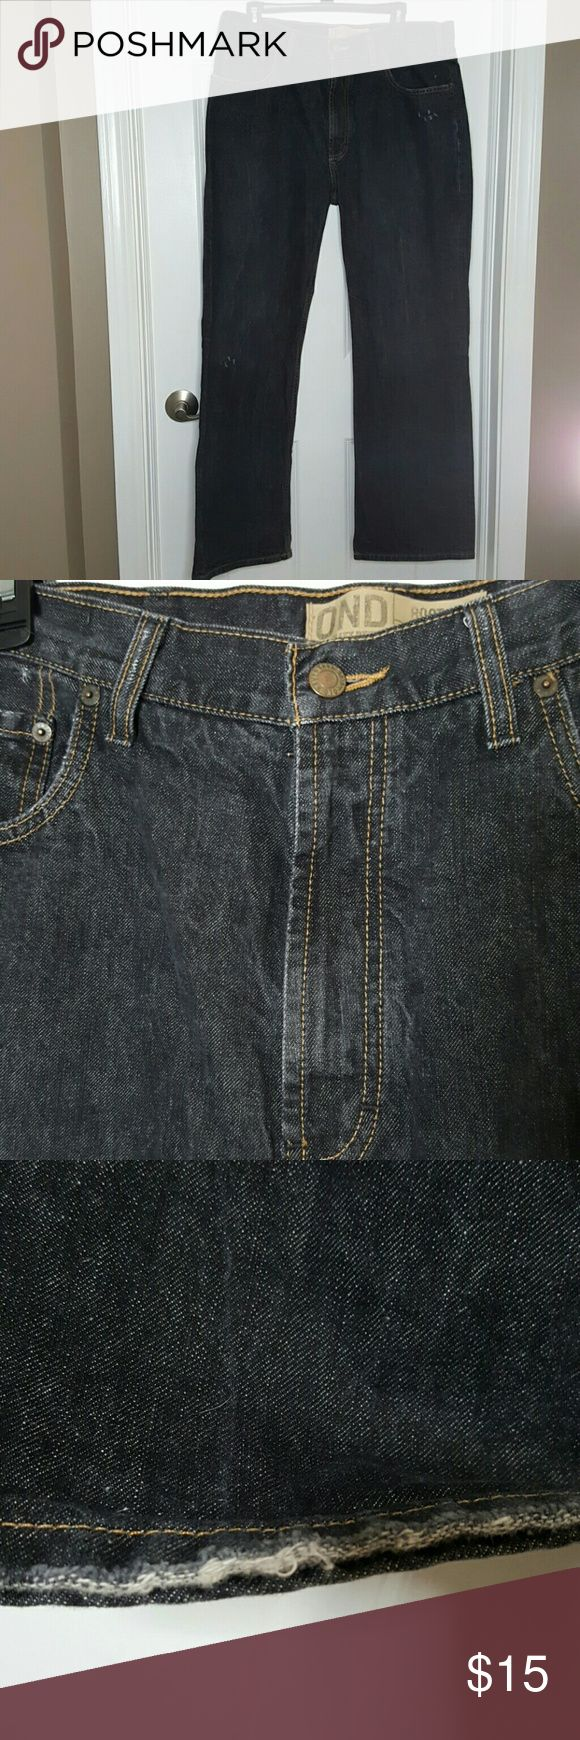 Old Navy Boot Cut Jeans sz. 36x32 Old Navy Boot Cut Jeans sz. 36x32 good condition. Slight fray on jean cuff. Old Navy Jeans